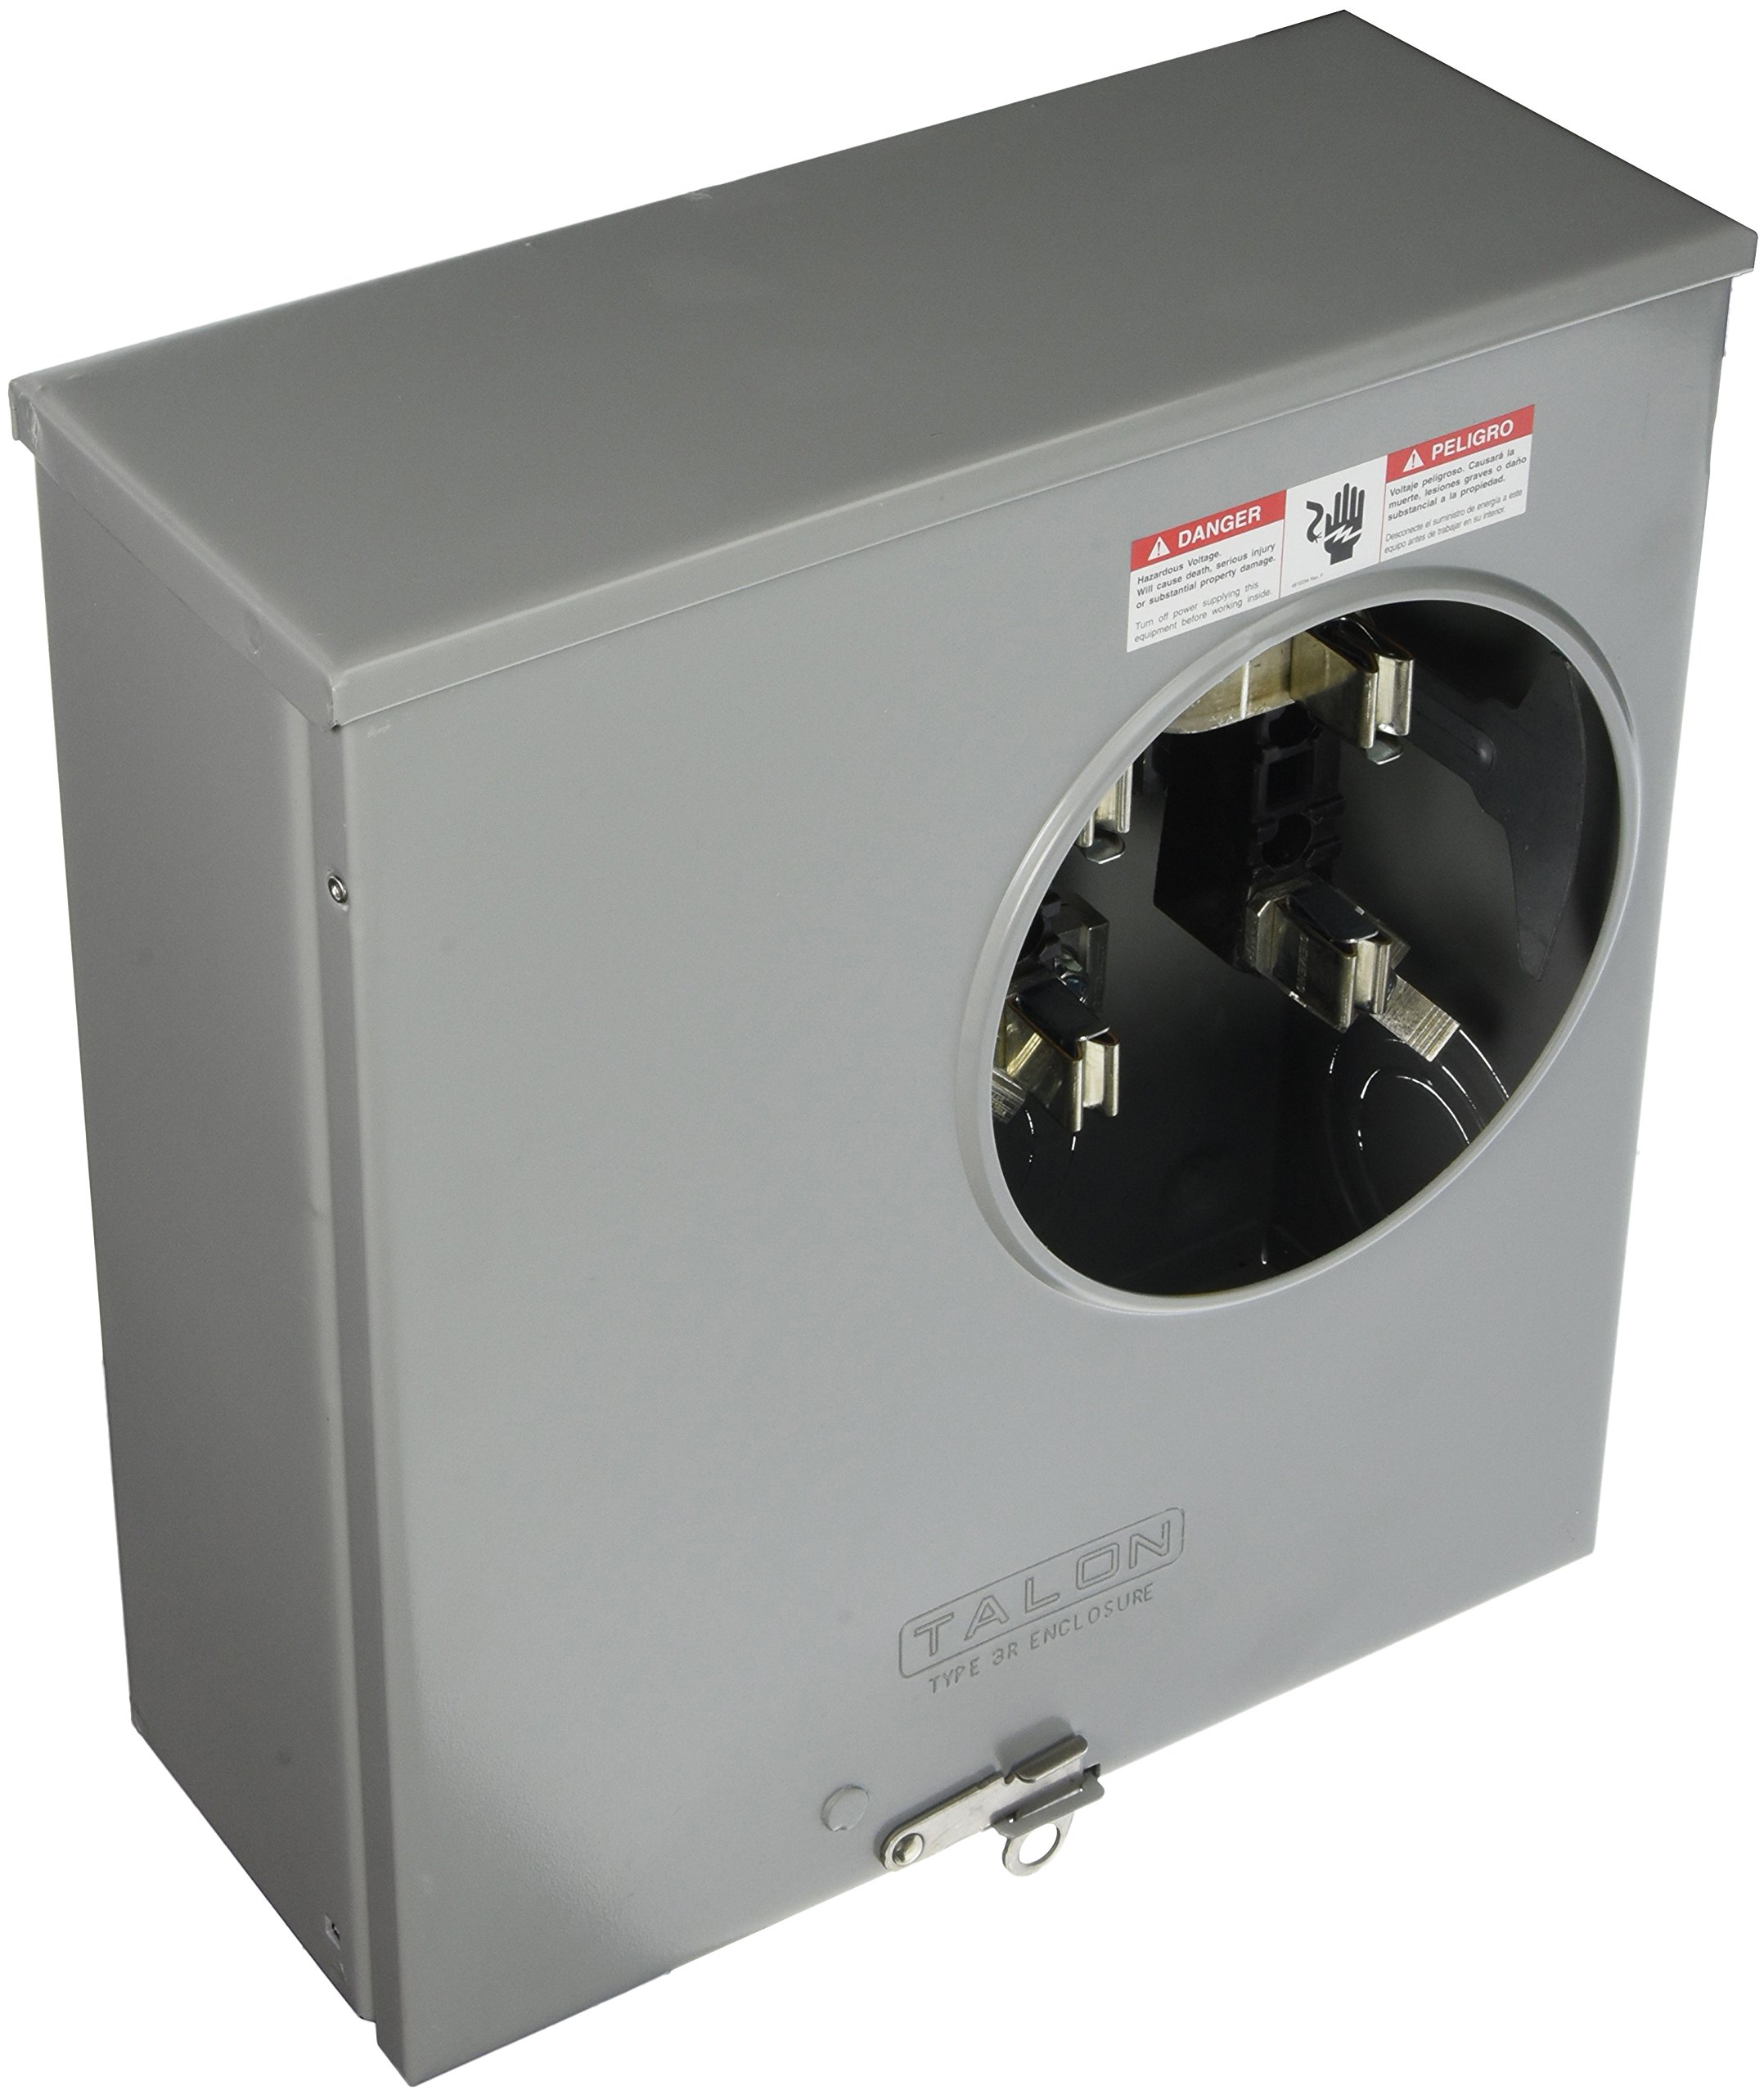 Siemens SUAS877-PPZA Meter Socket with 4 Jaw, Ringless Cover, Horn Bypass, Underground Feed, Side Wired and 7/16 Barrel Lock, 200-Amp